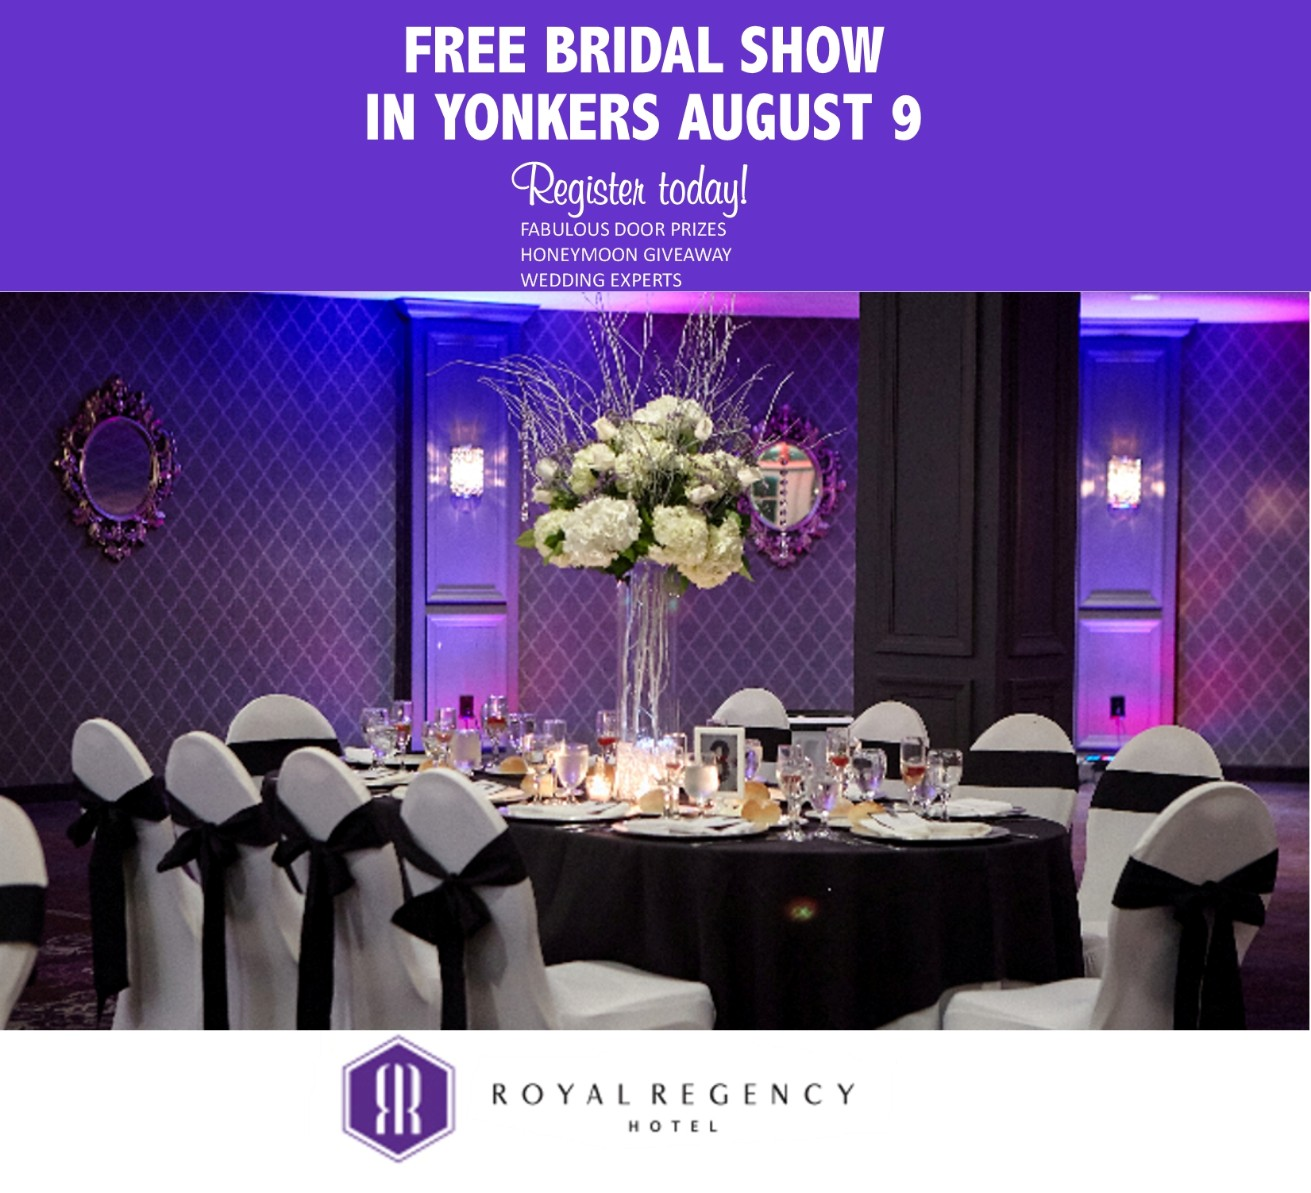 August 9 Free Bridal Show At The Royal Regency Hotel In